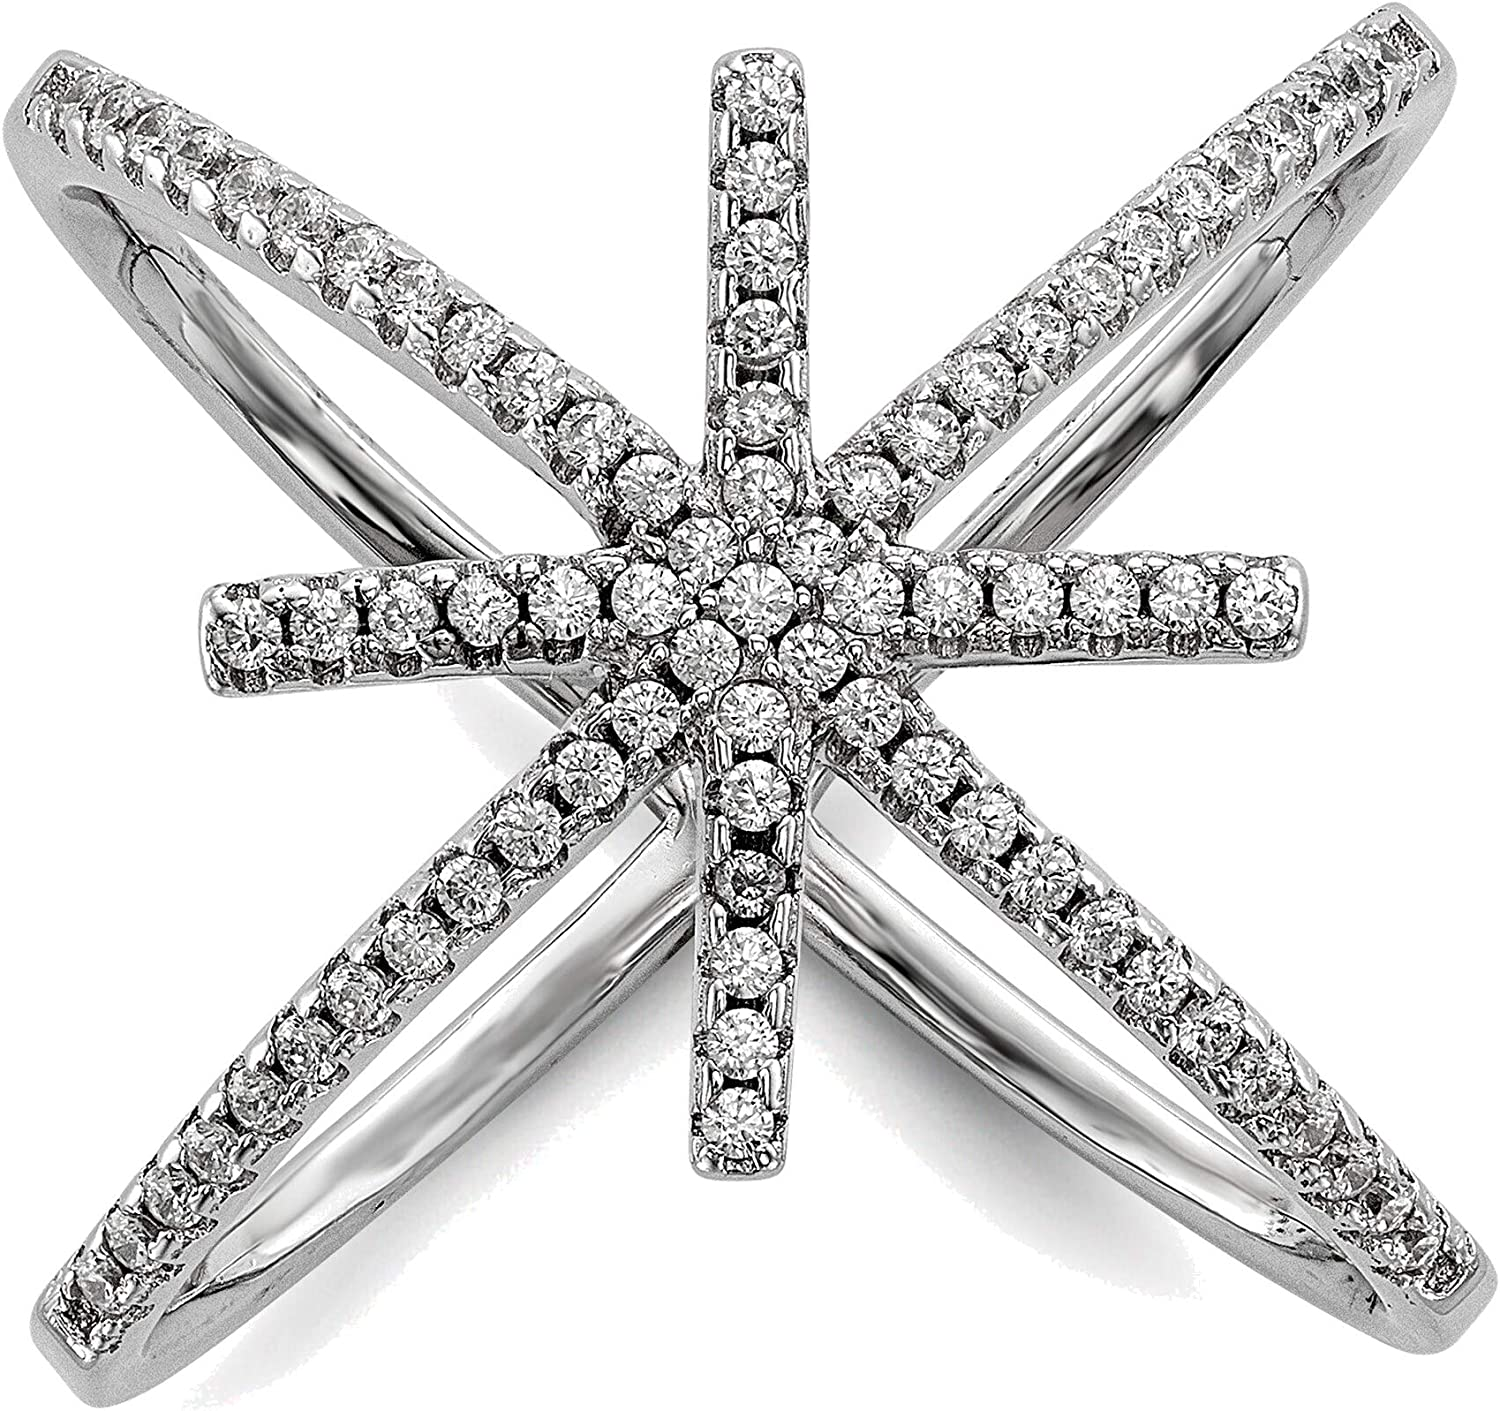 Bonyak Jewelry OFFicial shop Solid Sterling Silver CZ Rapid rise Cris Star Rhodium-Plated